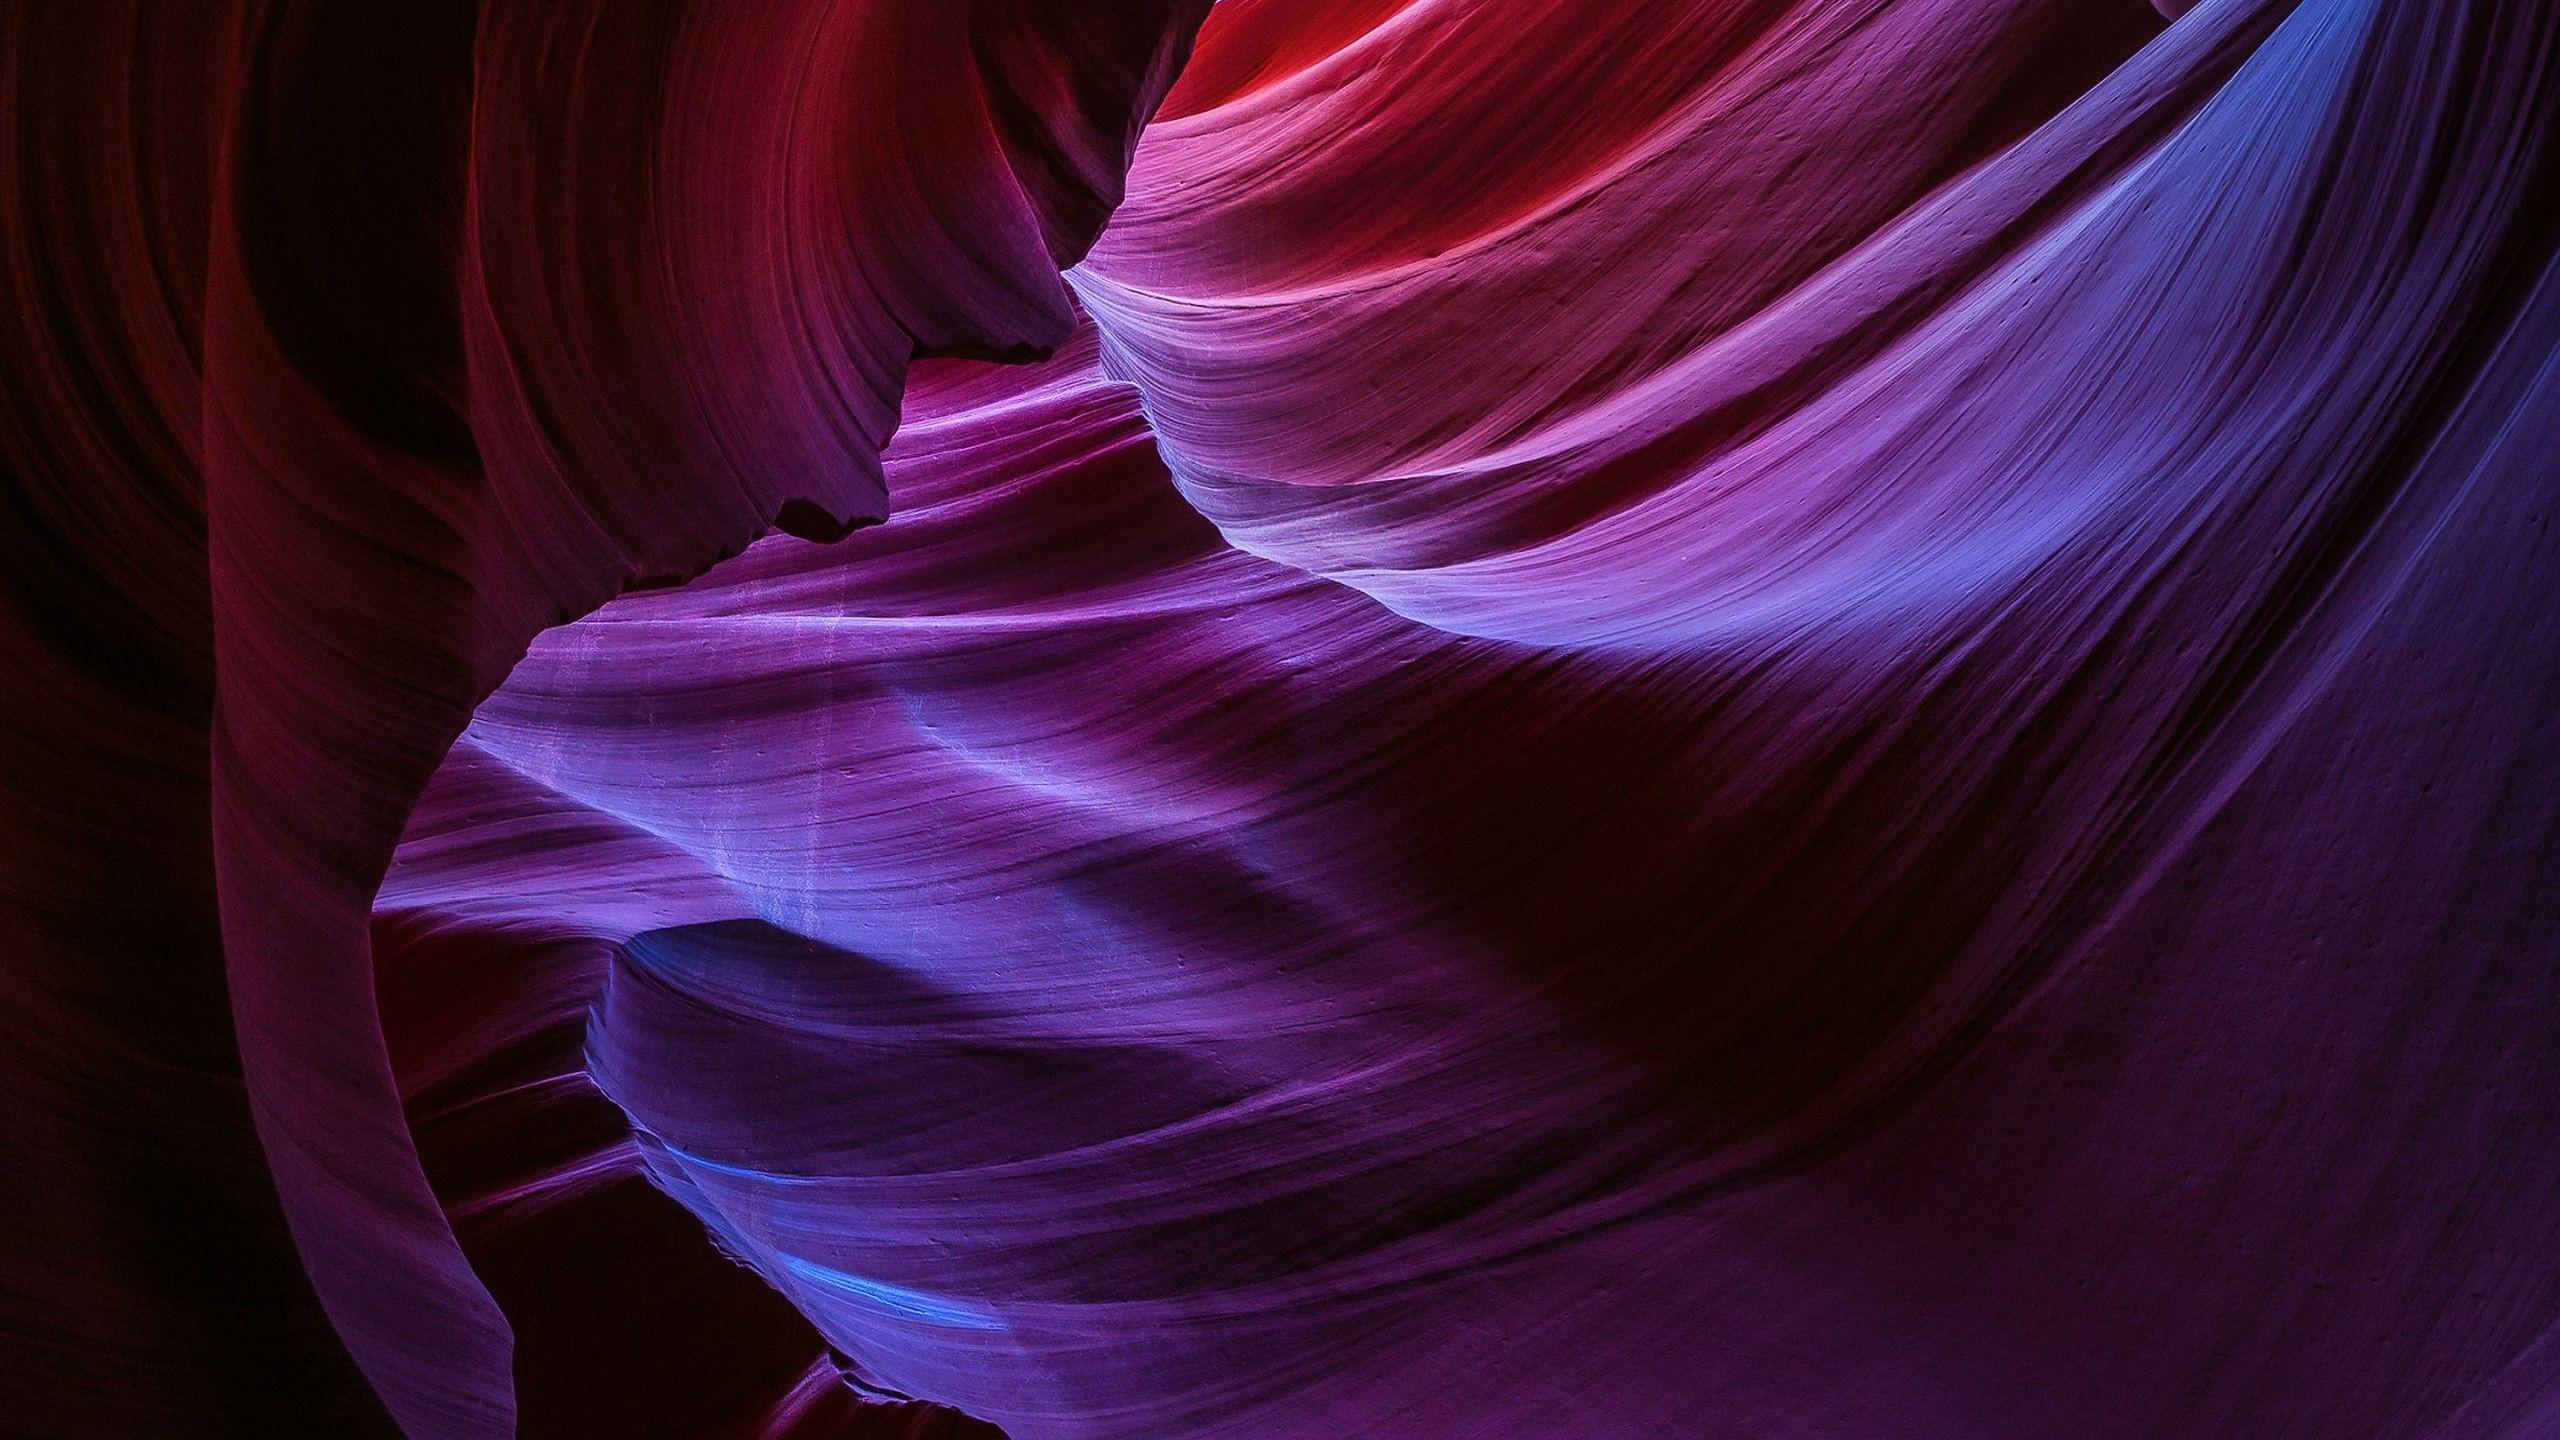 Wallpapers Antelope Canyon, HD, Nature,